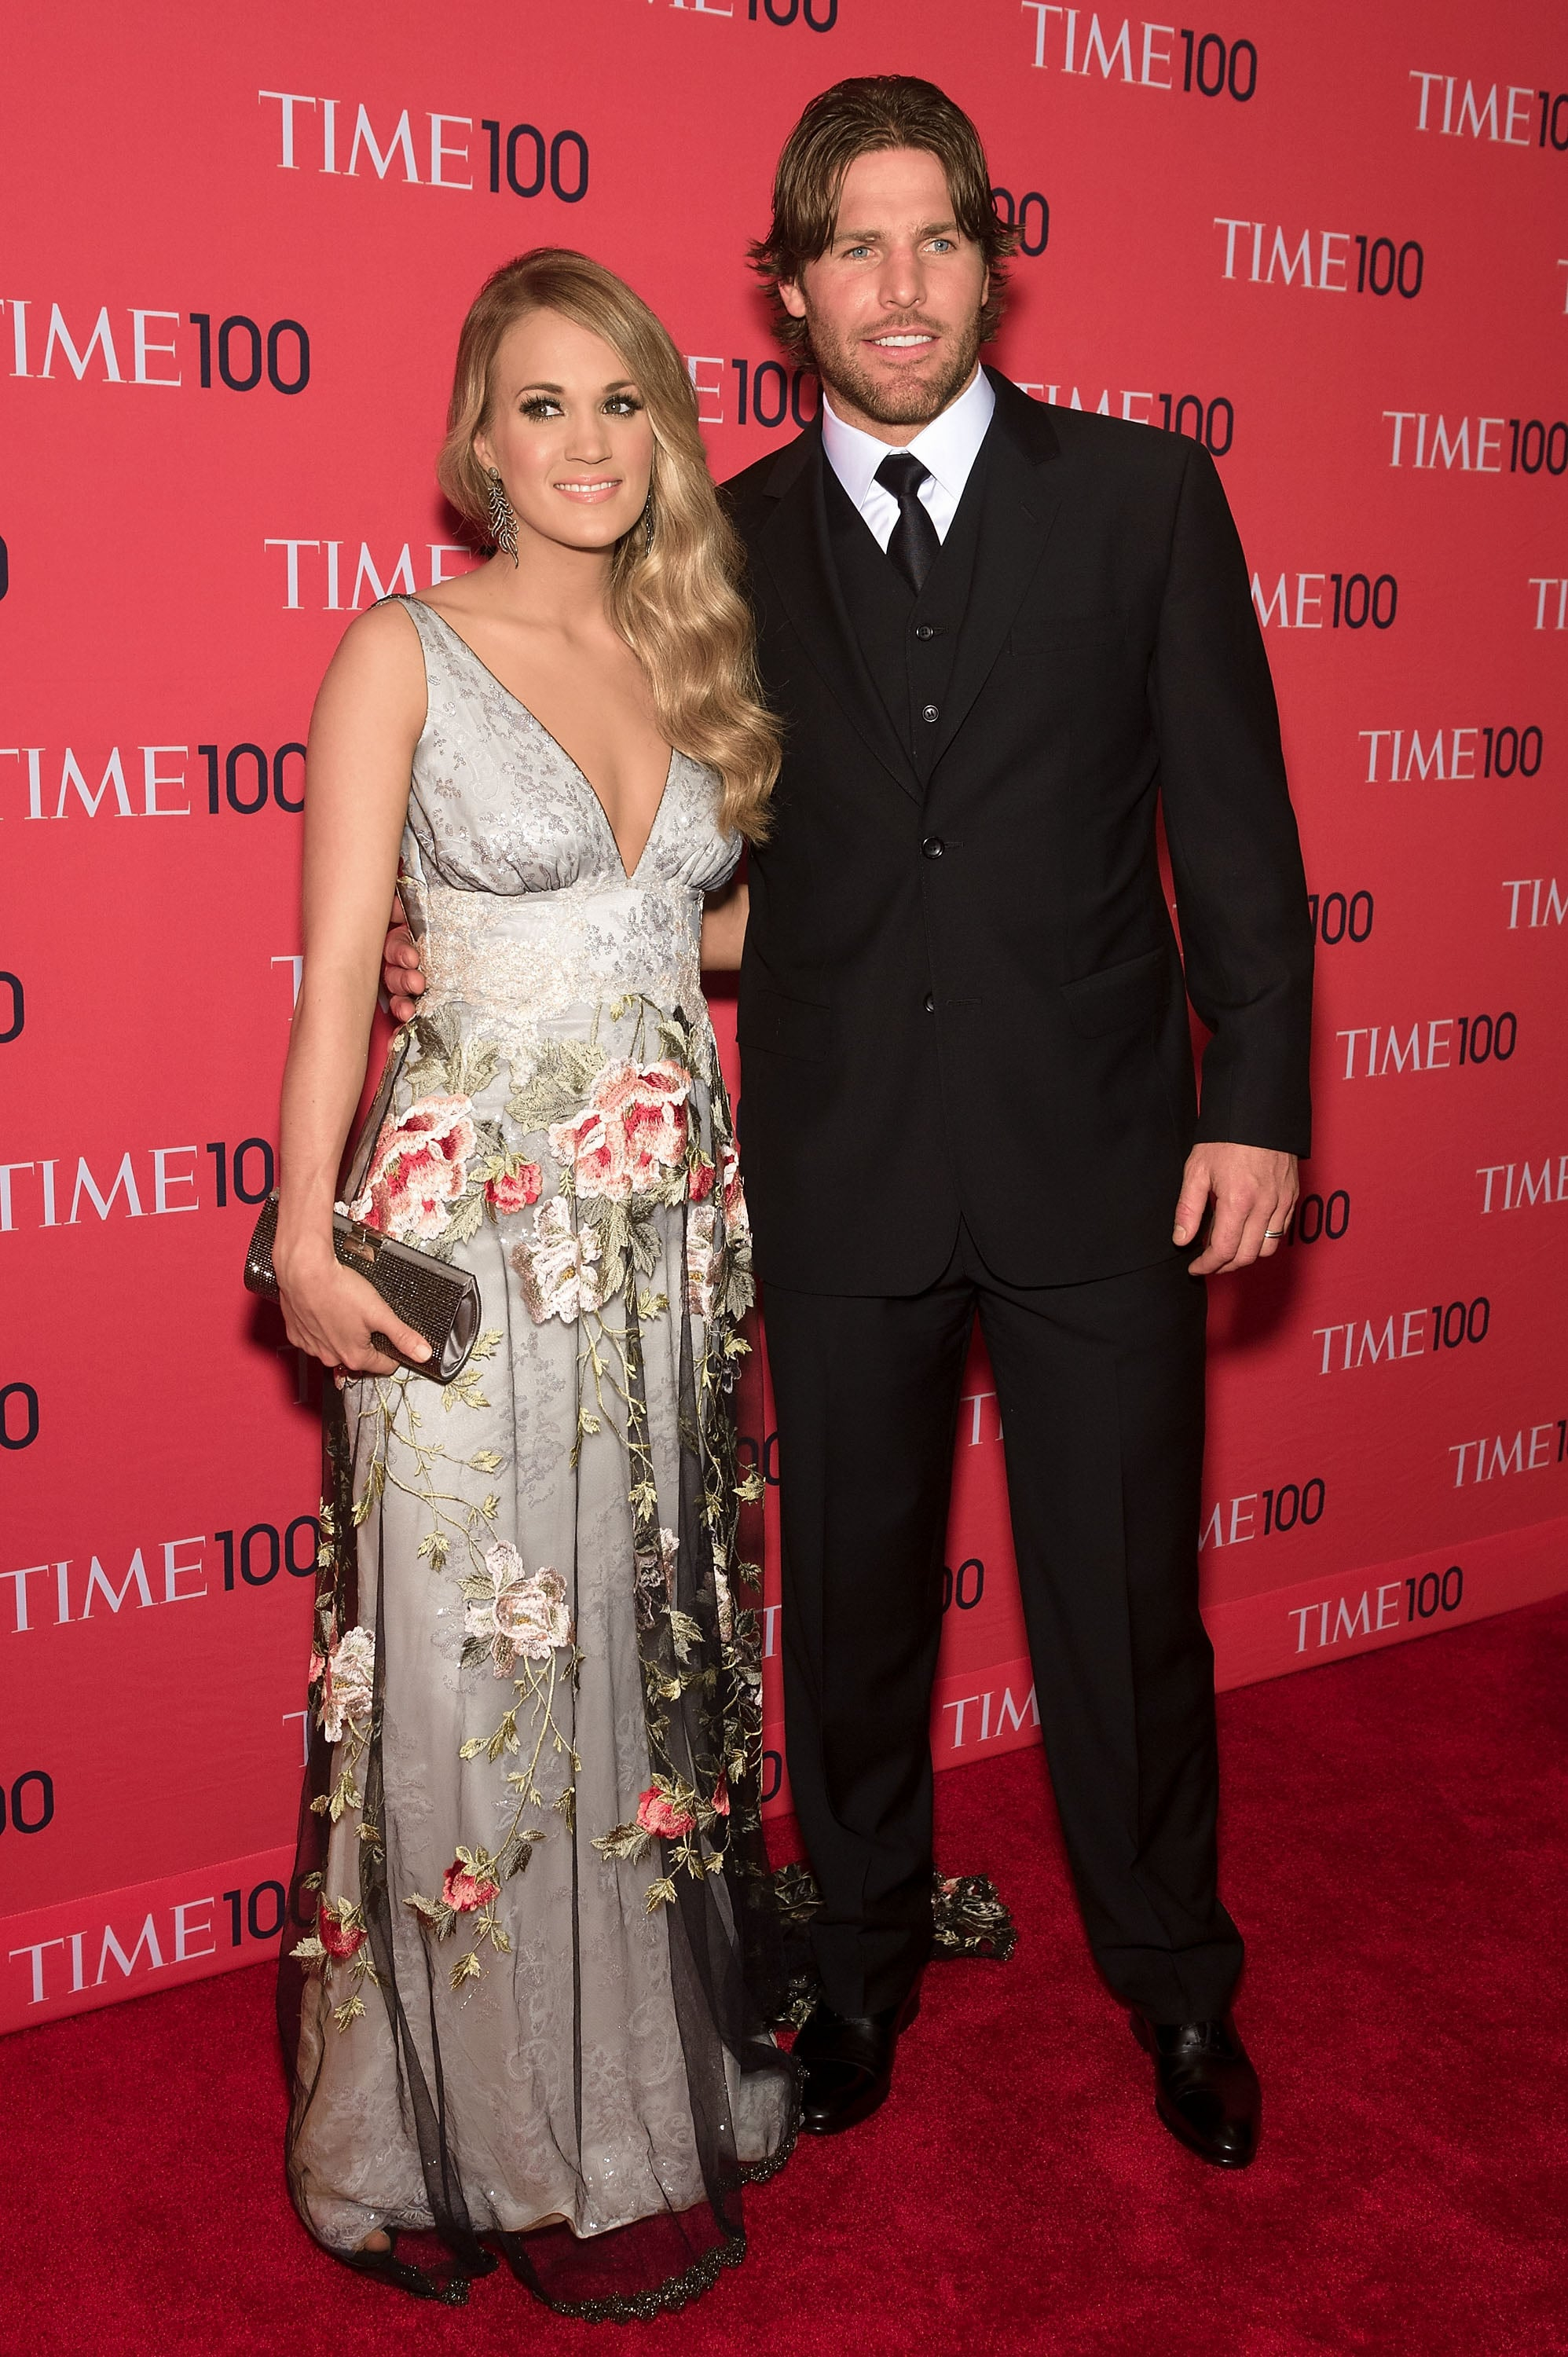 NEW YORK, NY - APRIL 29:  Carrie Underwood (L) and husband Mike Fisher attend the 2014 Time 100 Gala at Frederick P. Rose Hall, Jazz at Lincoln Centre on April 29, 2014 in New York City.  (Photo by D Dipasupil/FilmMagic)